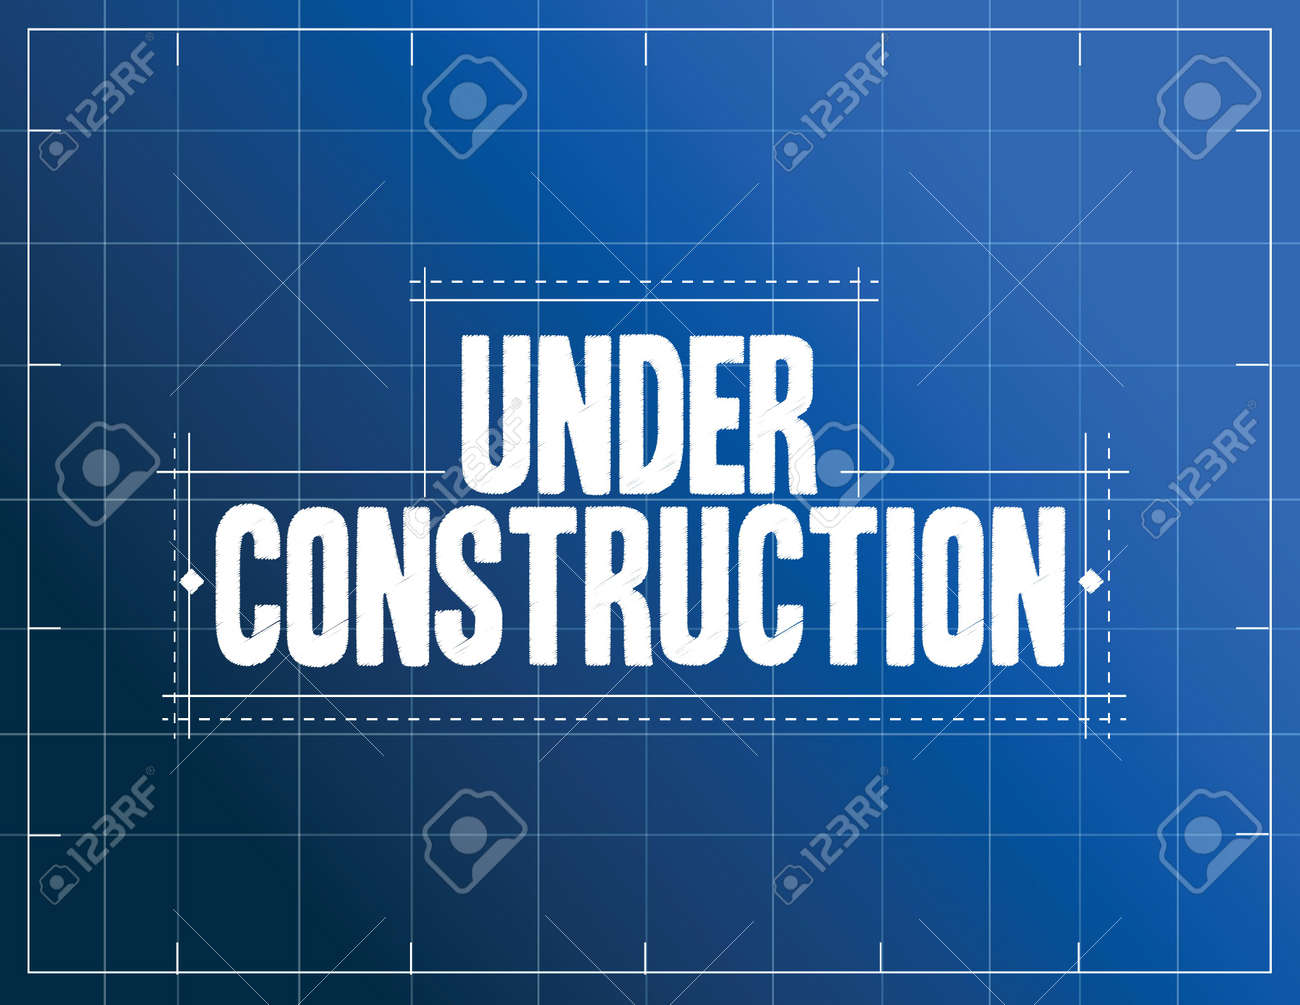 Perfect Under Construction Blueprint Illustration Design Over A Blue Background  Stock Vector   34882972